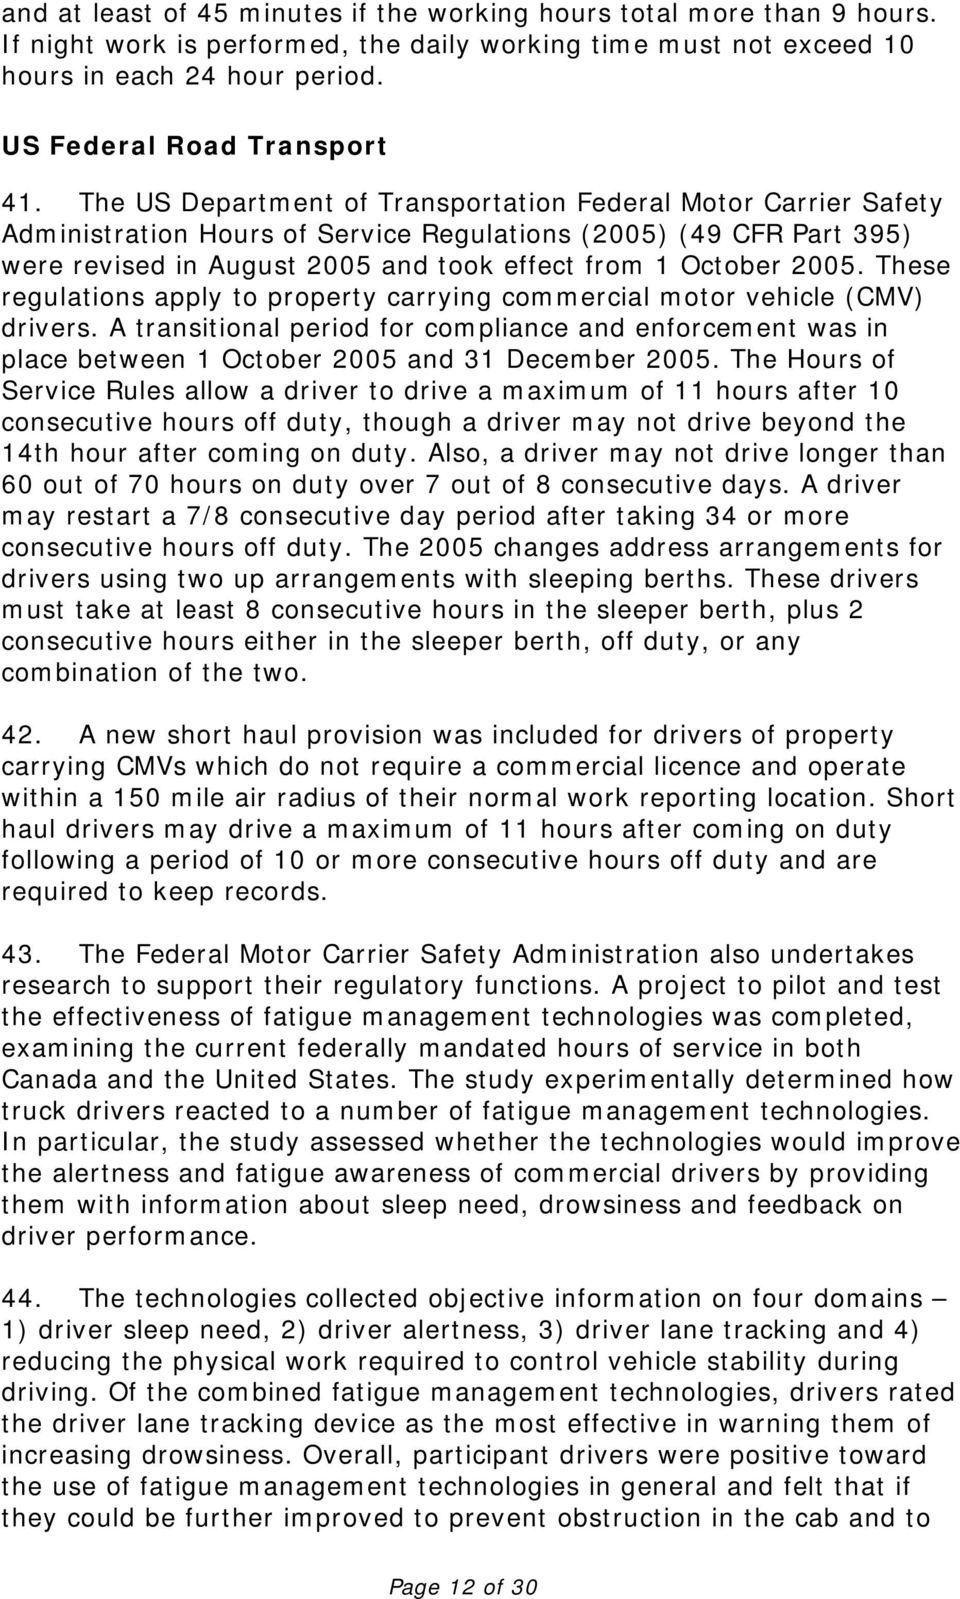 The US Department of Transportation Federal Motor Carrier Safety Administration Hours of Service Regulations (2005) (49 CFR Part 395) were revised in August 2005 and took effect from 1 October 2005.